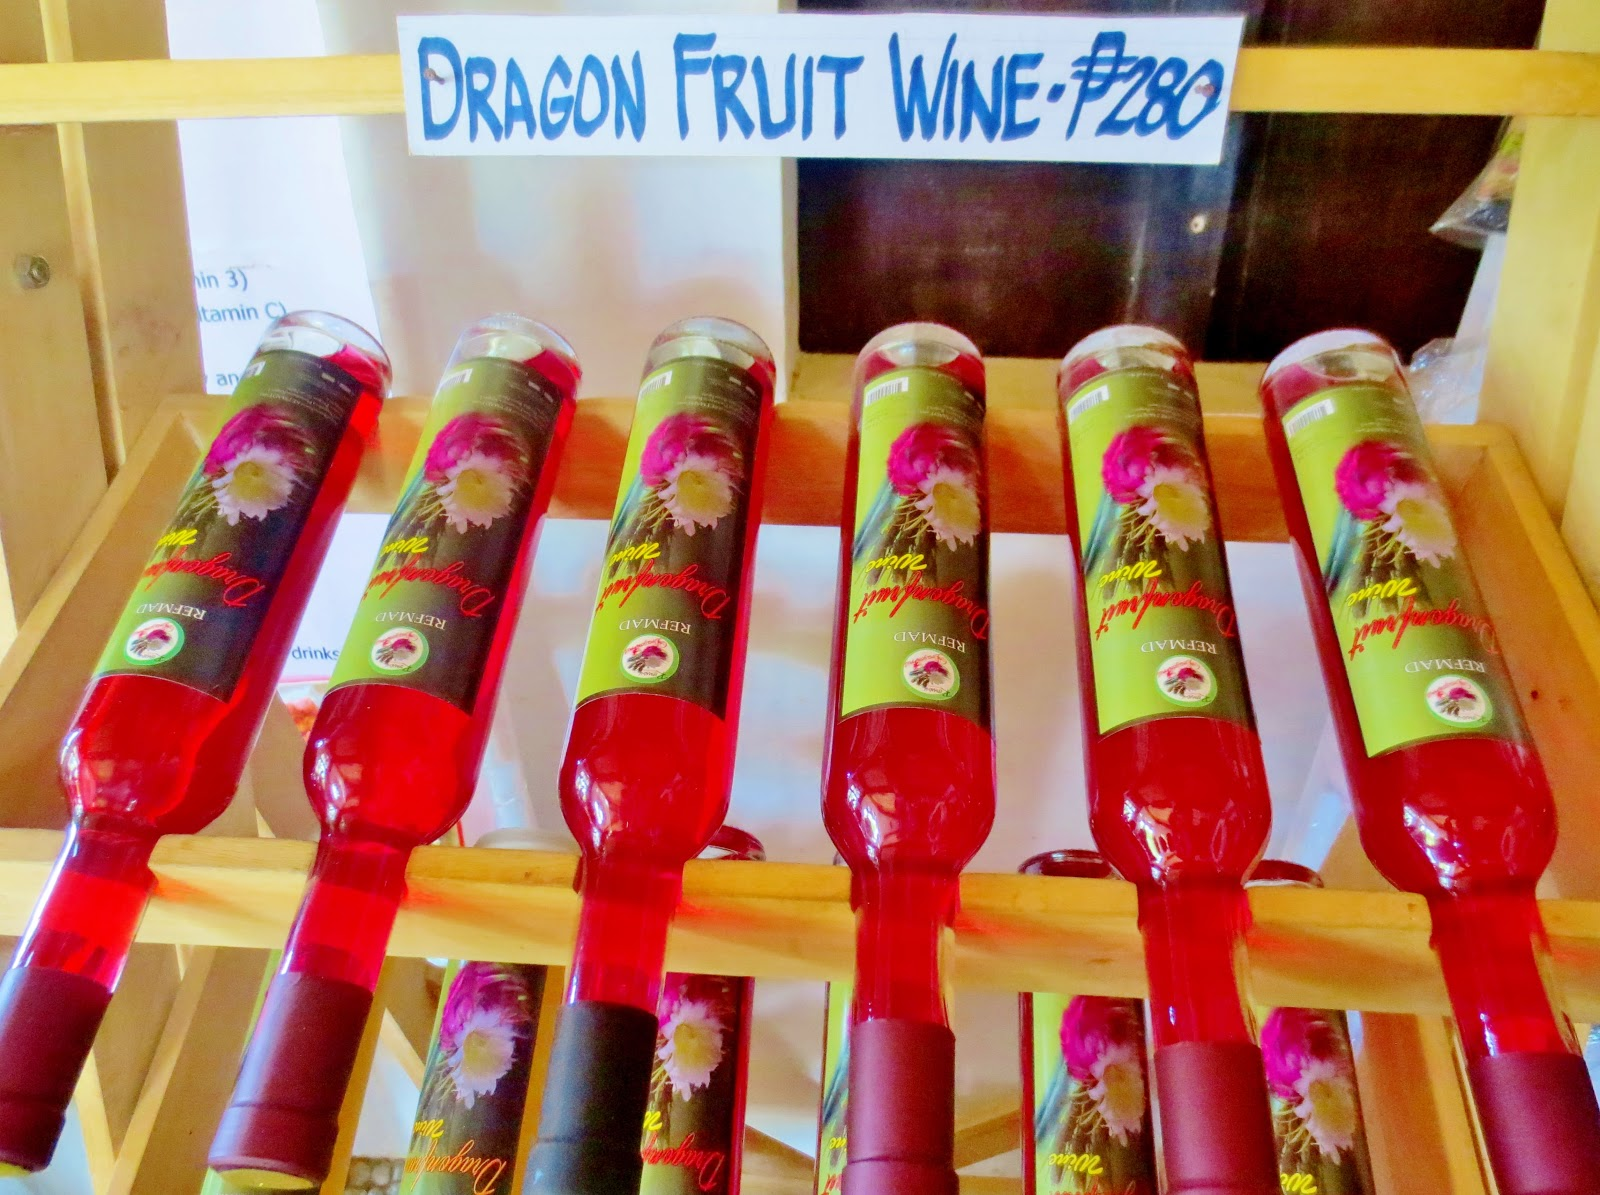 REFMAD Farm's Dragon Fruit Wine